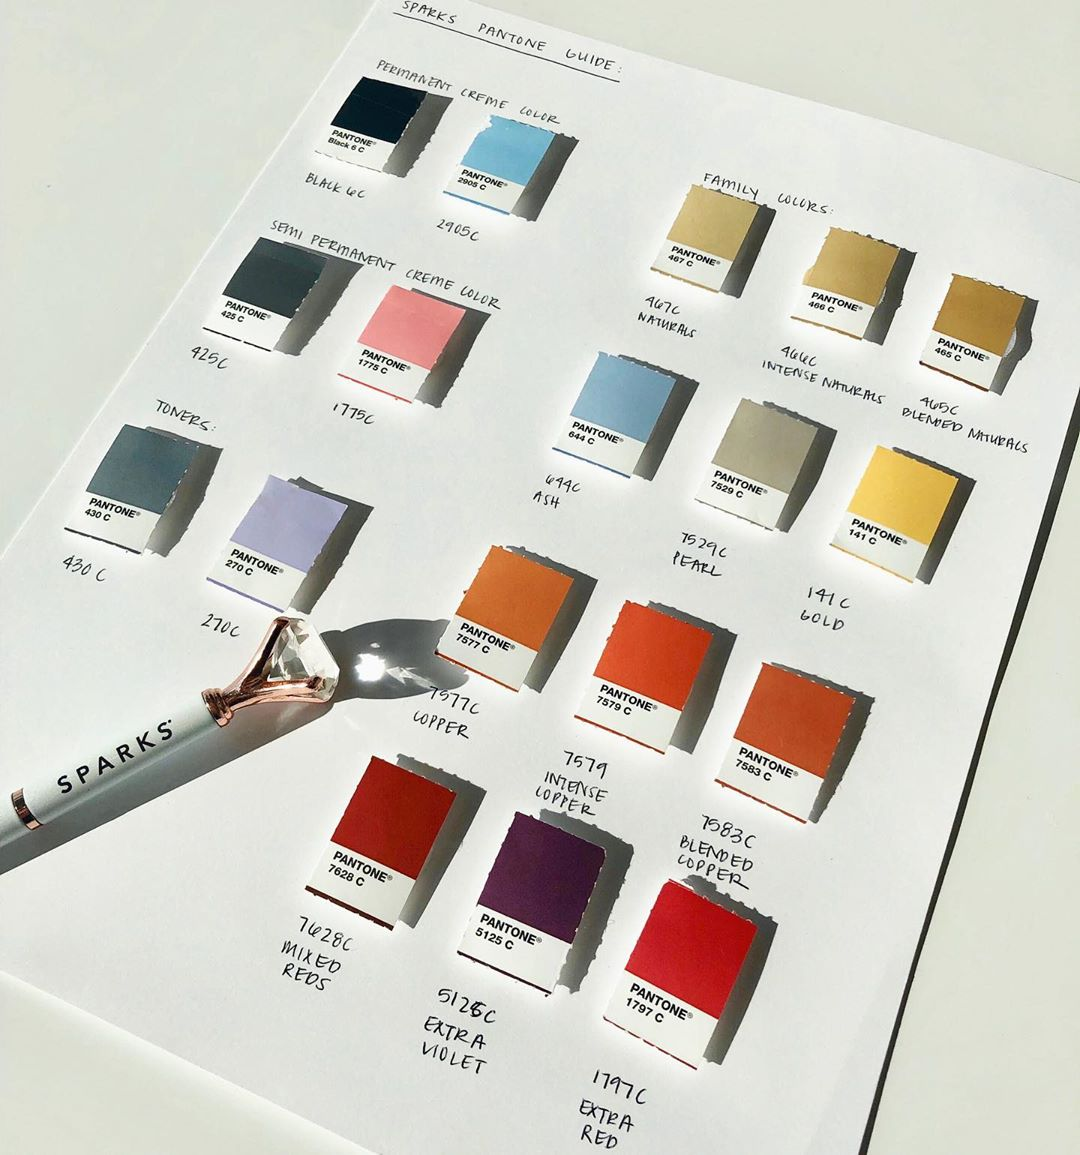 Sparks pantone guide with a pen